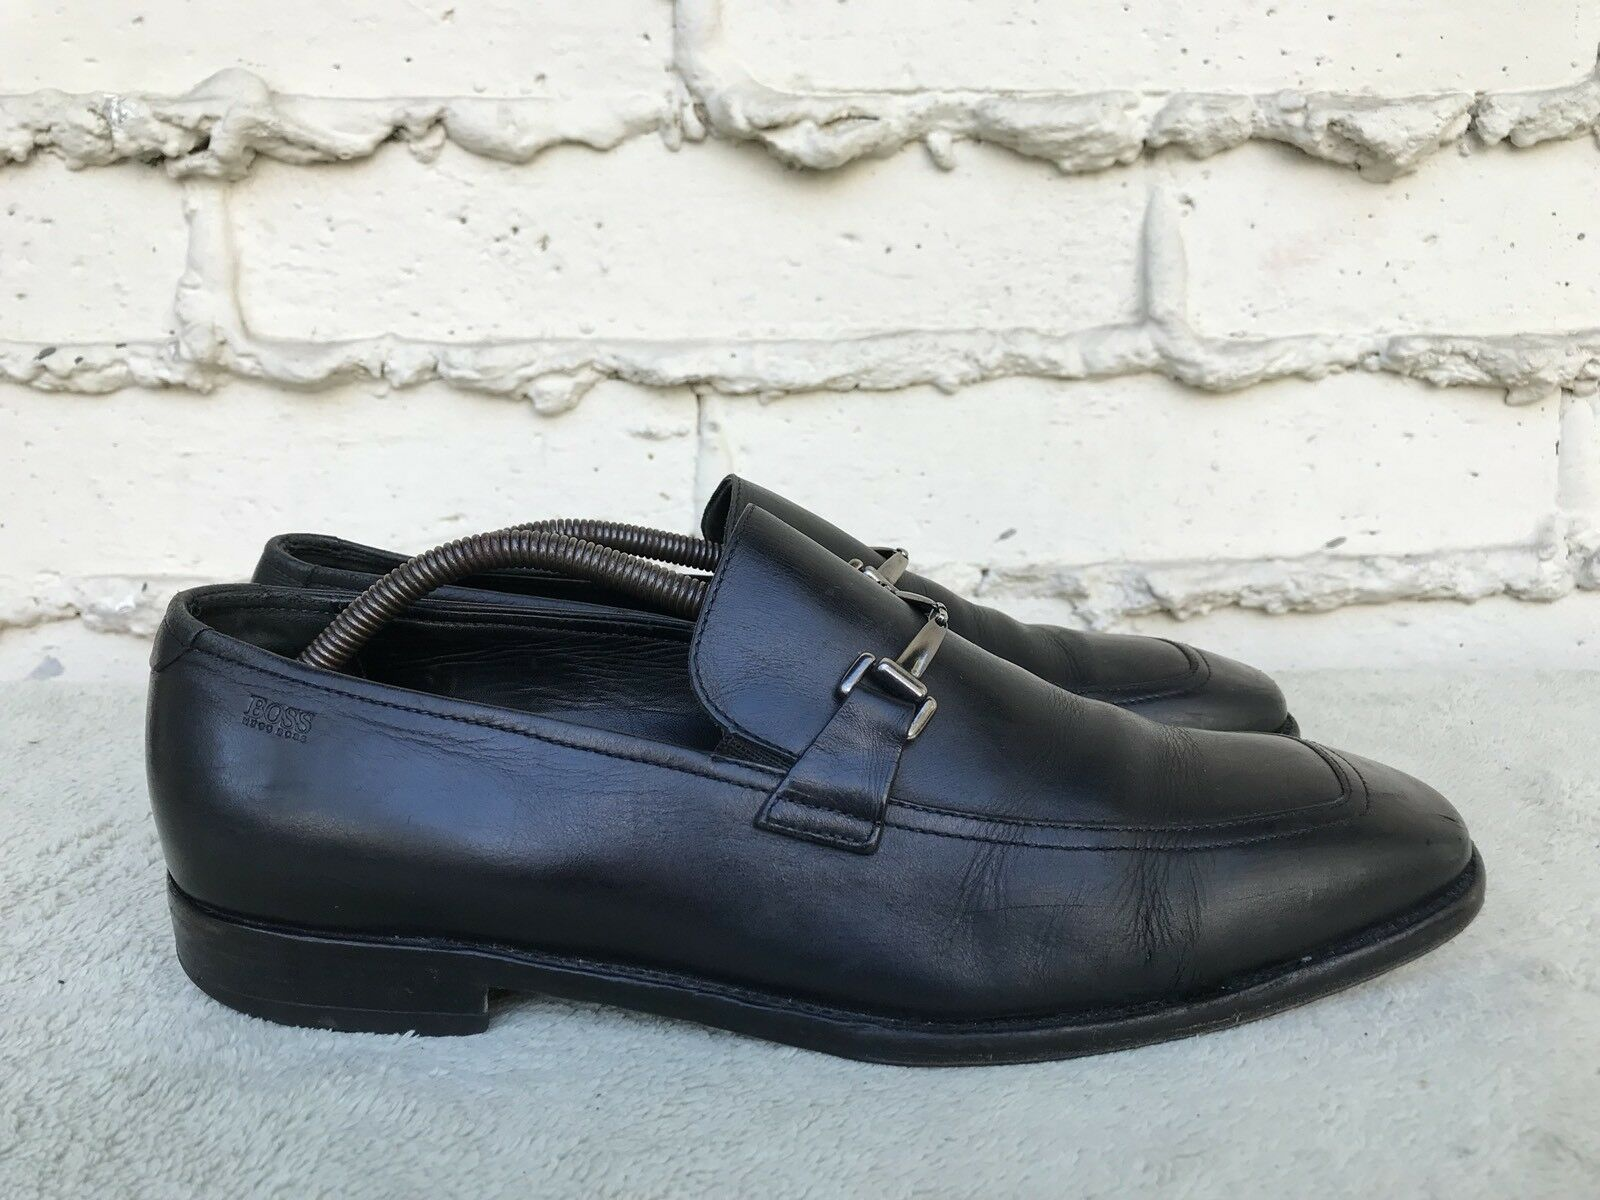 HUGO BOSS MEN US 9 schwarz LEATHER LOAFER SLIP ON schuhe Silber HORSE BIT